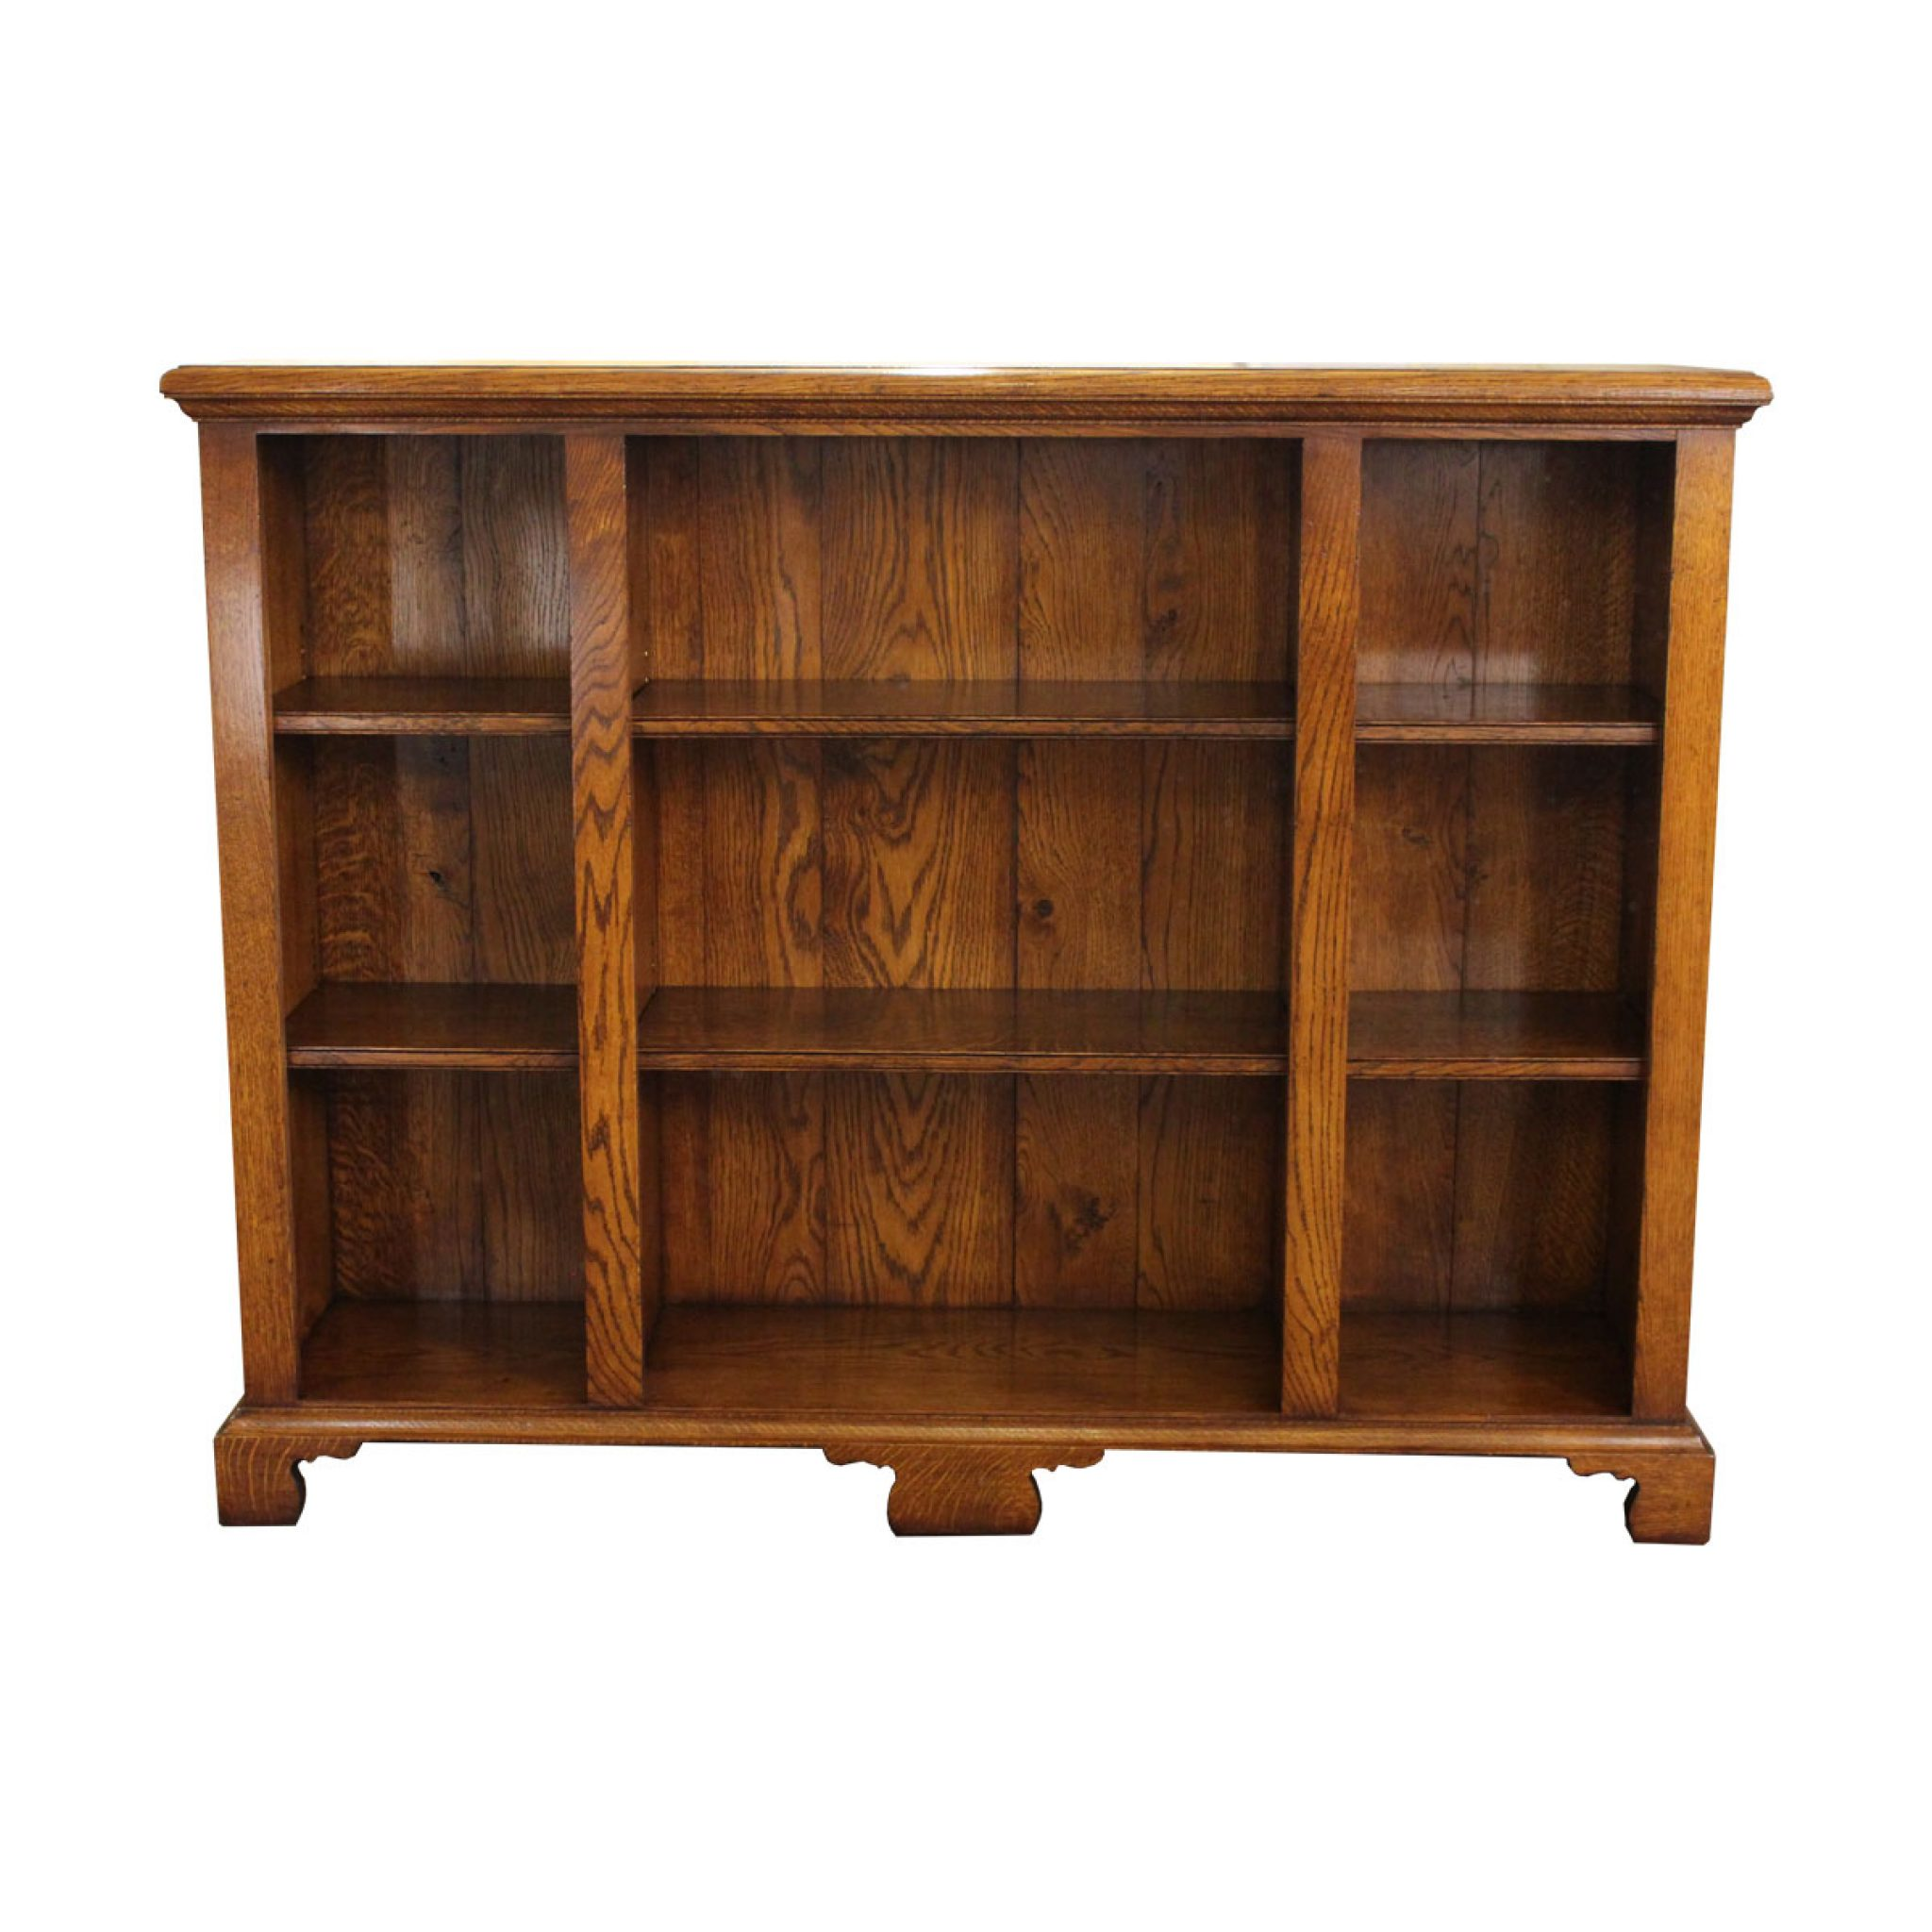 Handmade Oak Furniture Chorleywood